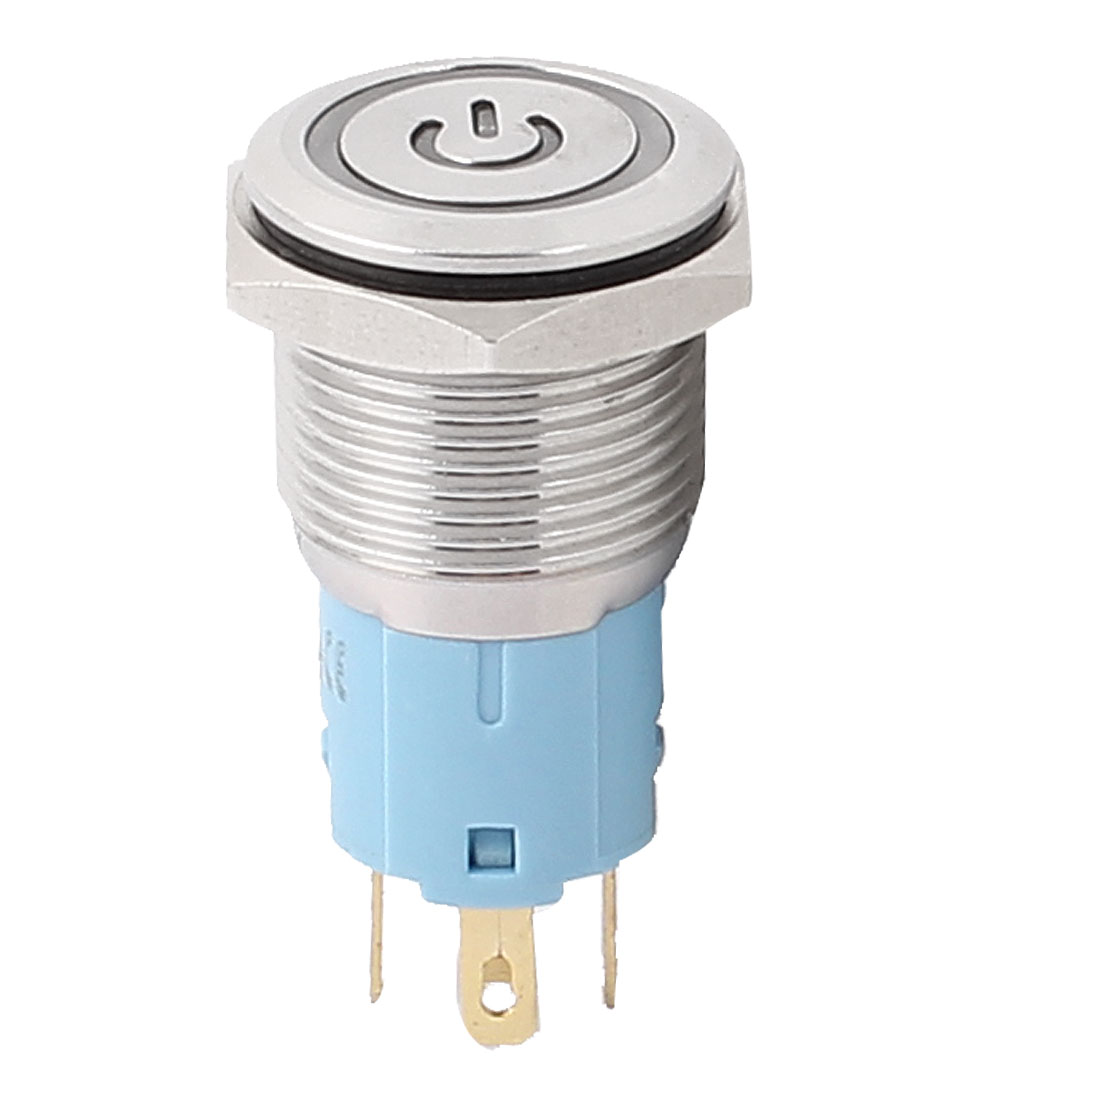 12V 16mm Dia Thread Blue LED Lamp Momentary Metal Pushbutton Power Switch